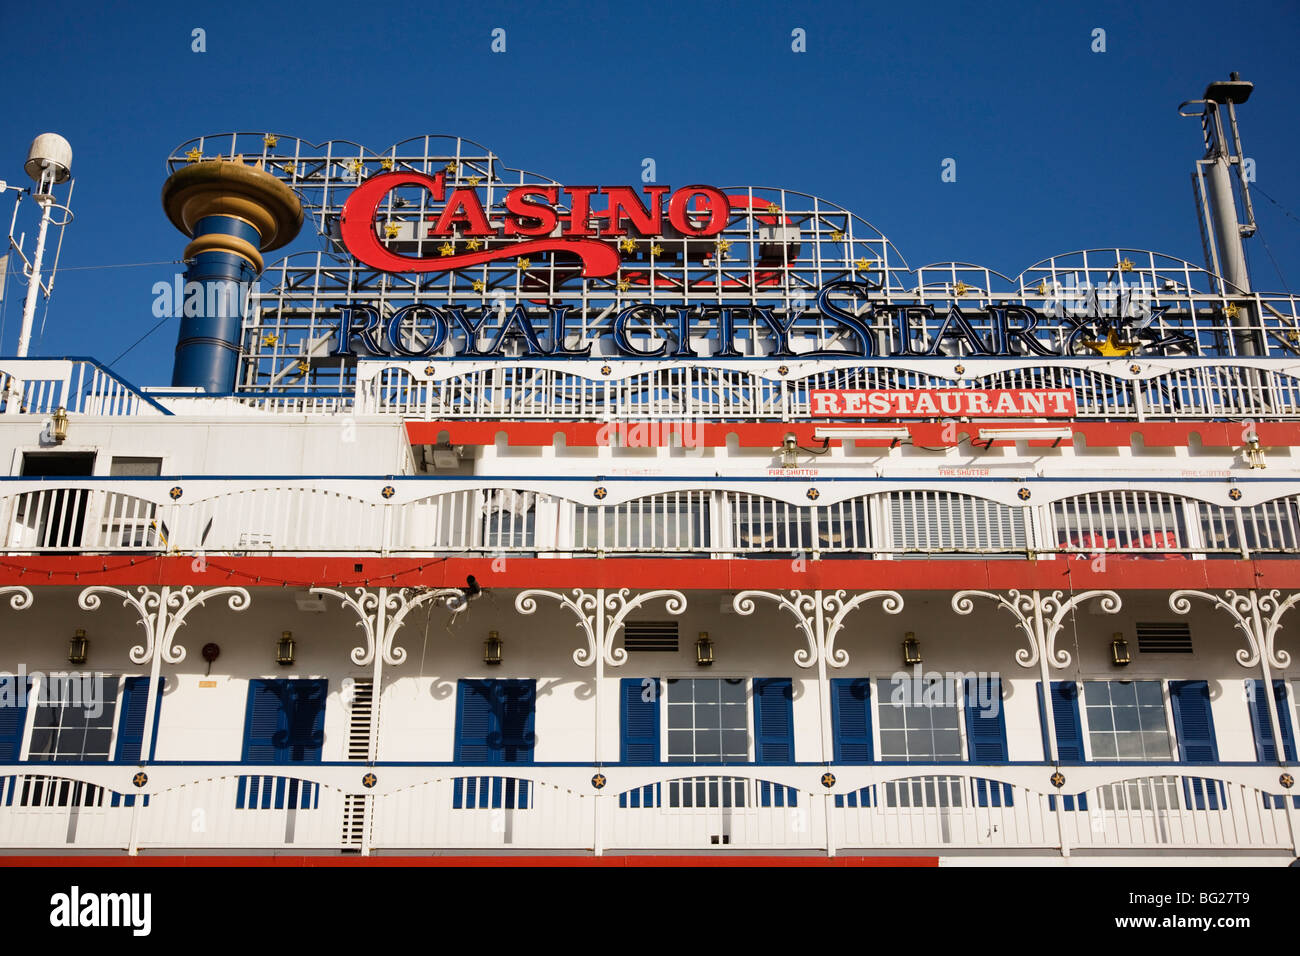 New westminster riverboat casino mississippi casino payouts